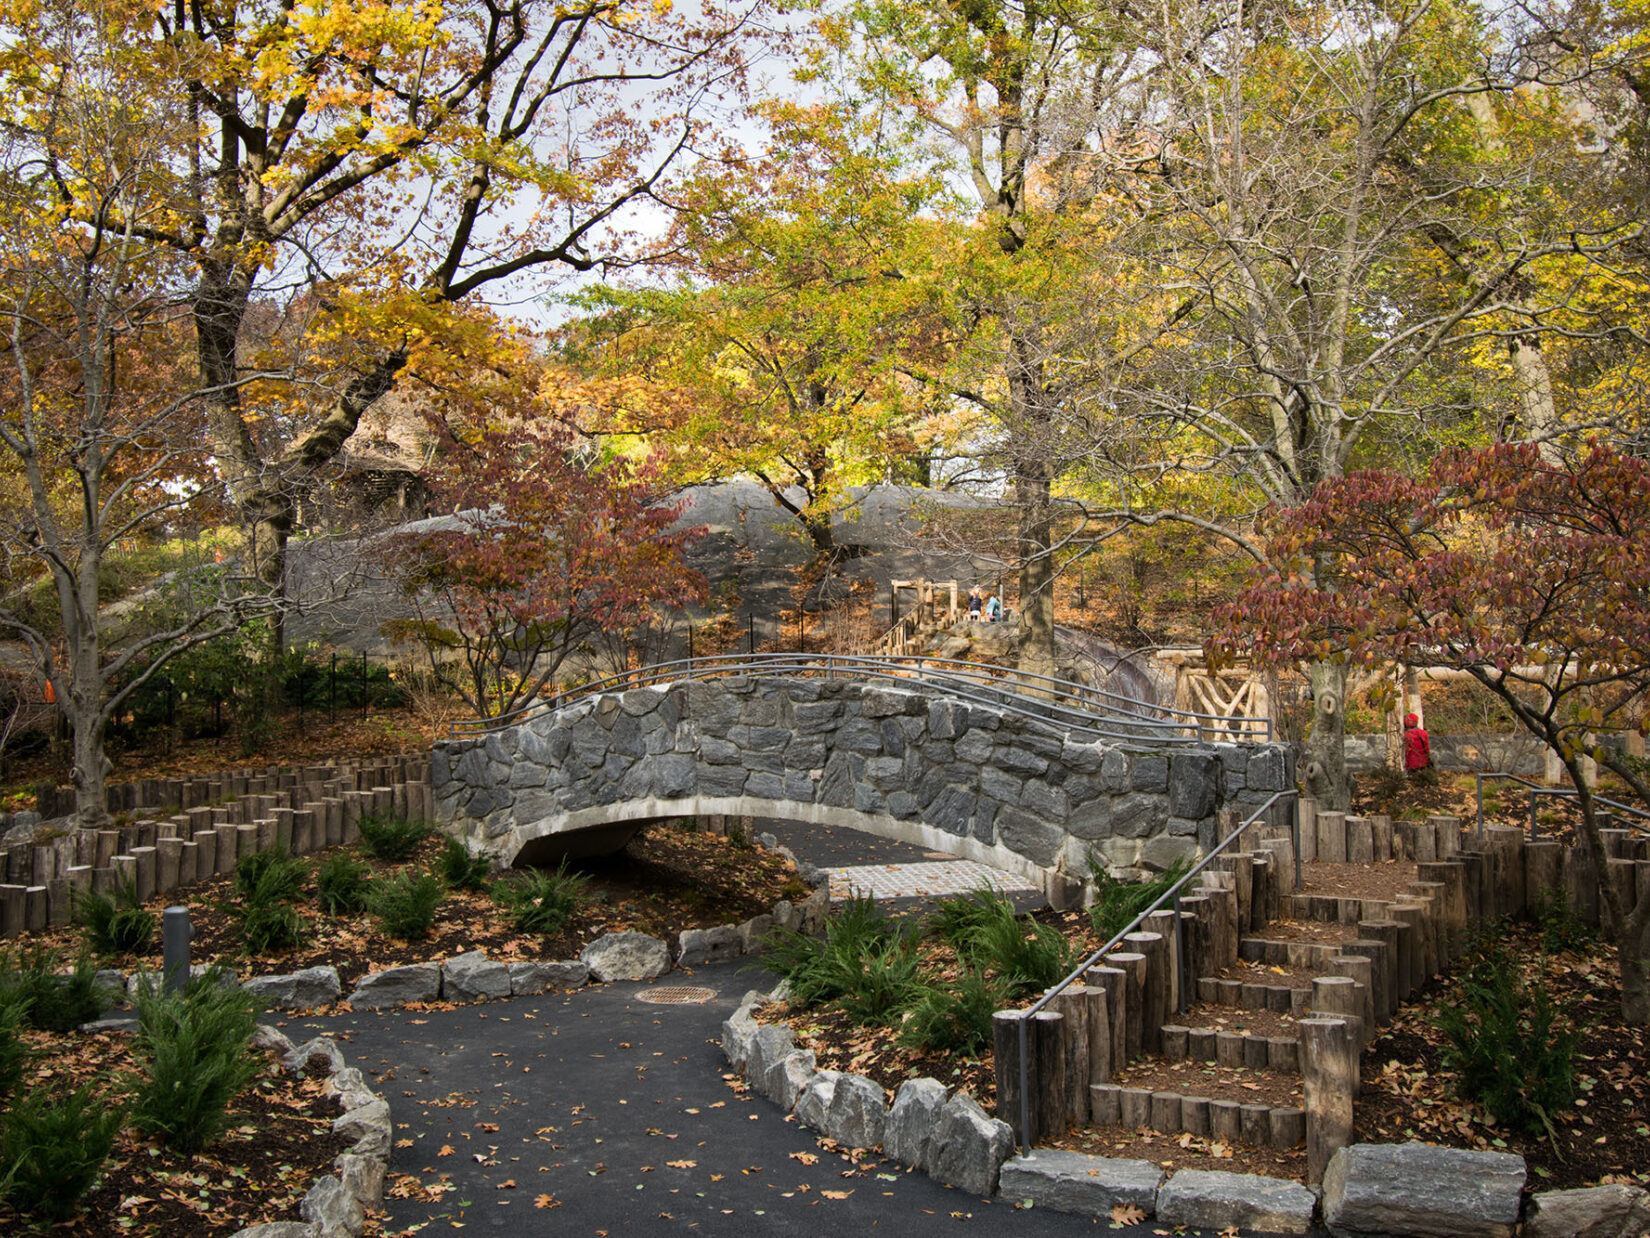 Fall foliage highlights the rustic theme of the playground